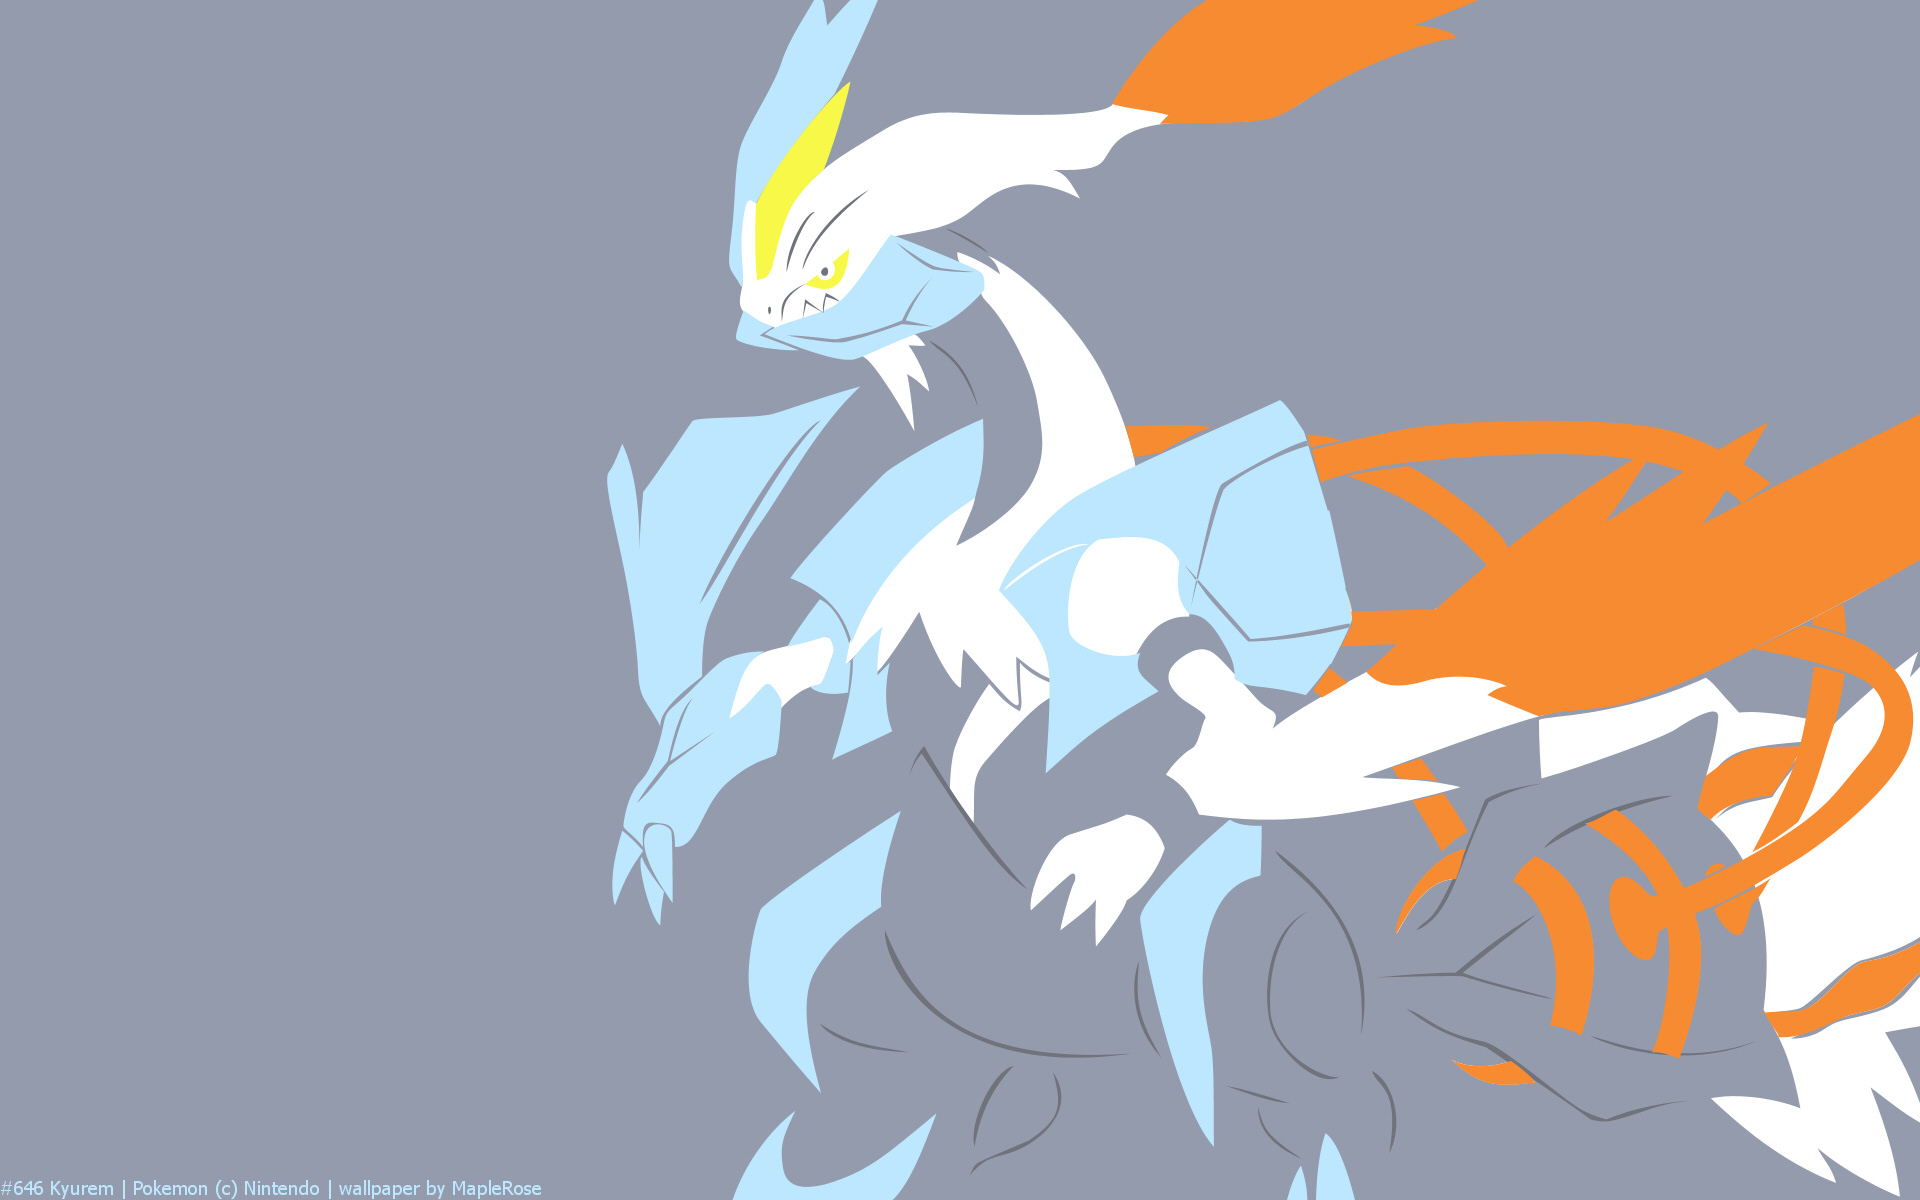 Kyurem - #646 - Serebii.net Pokédex